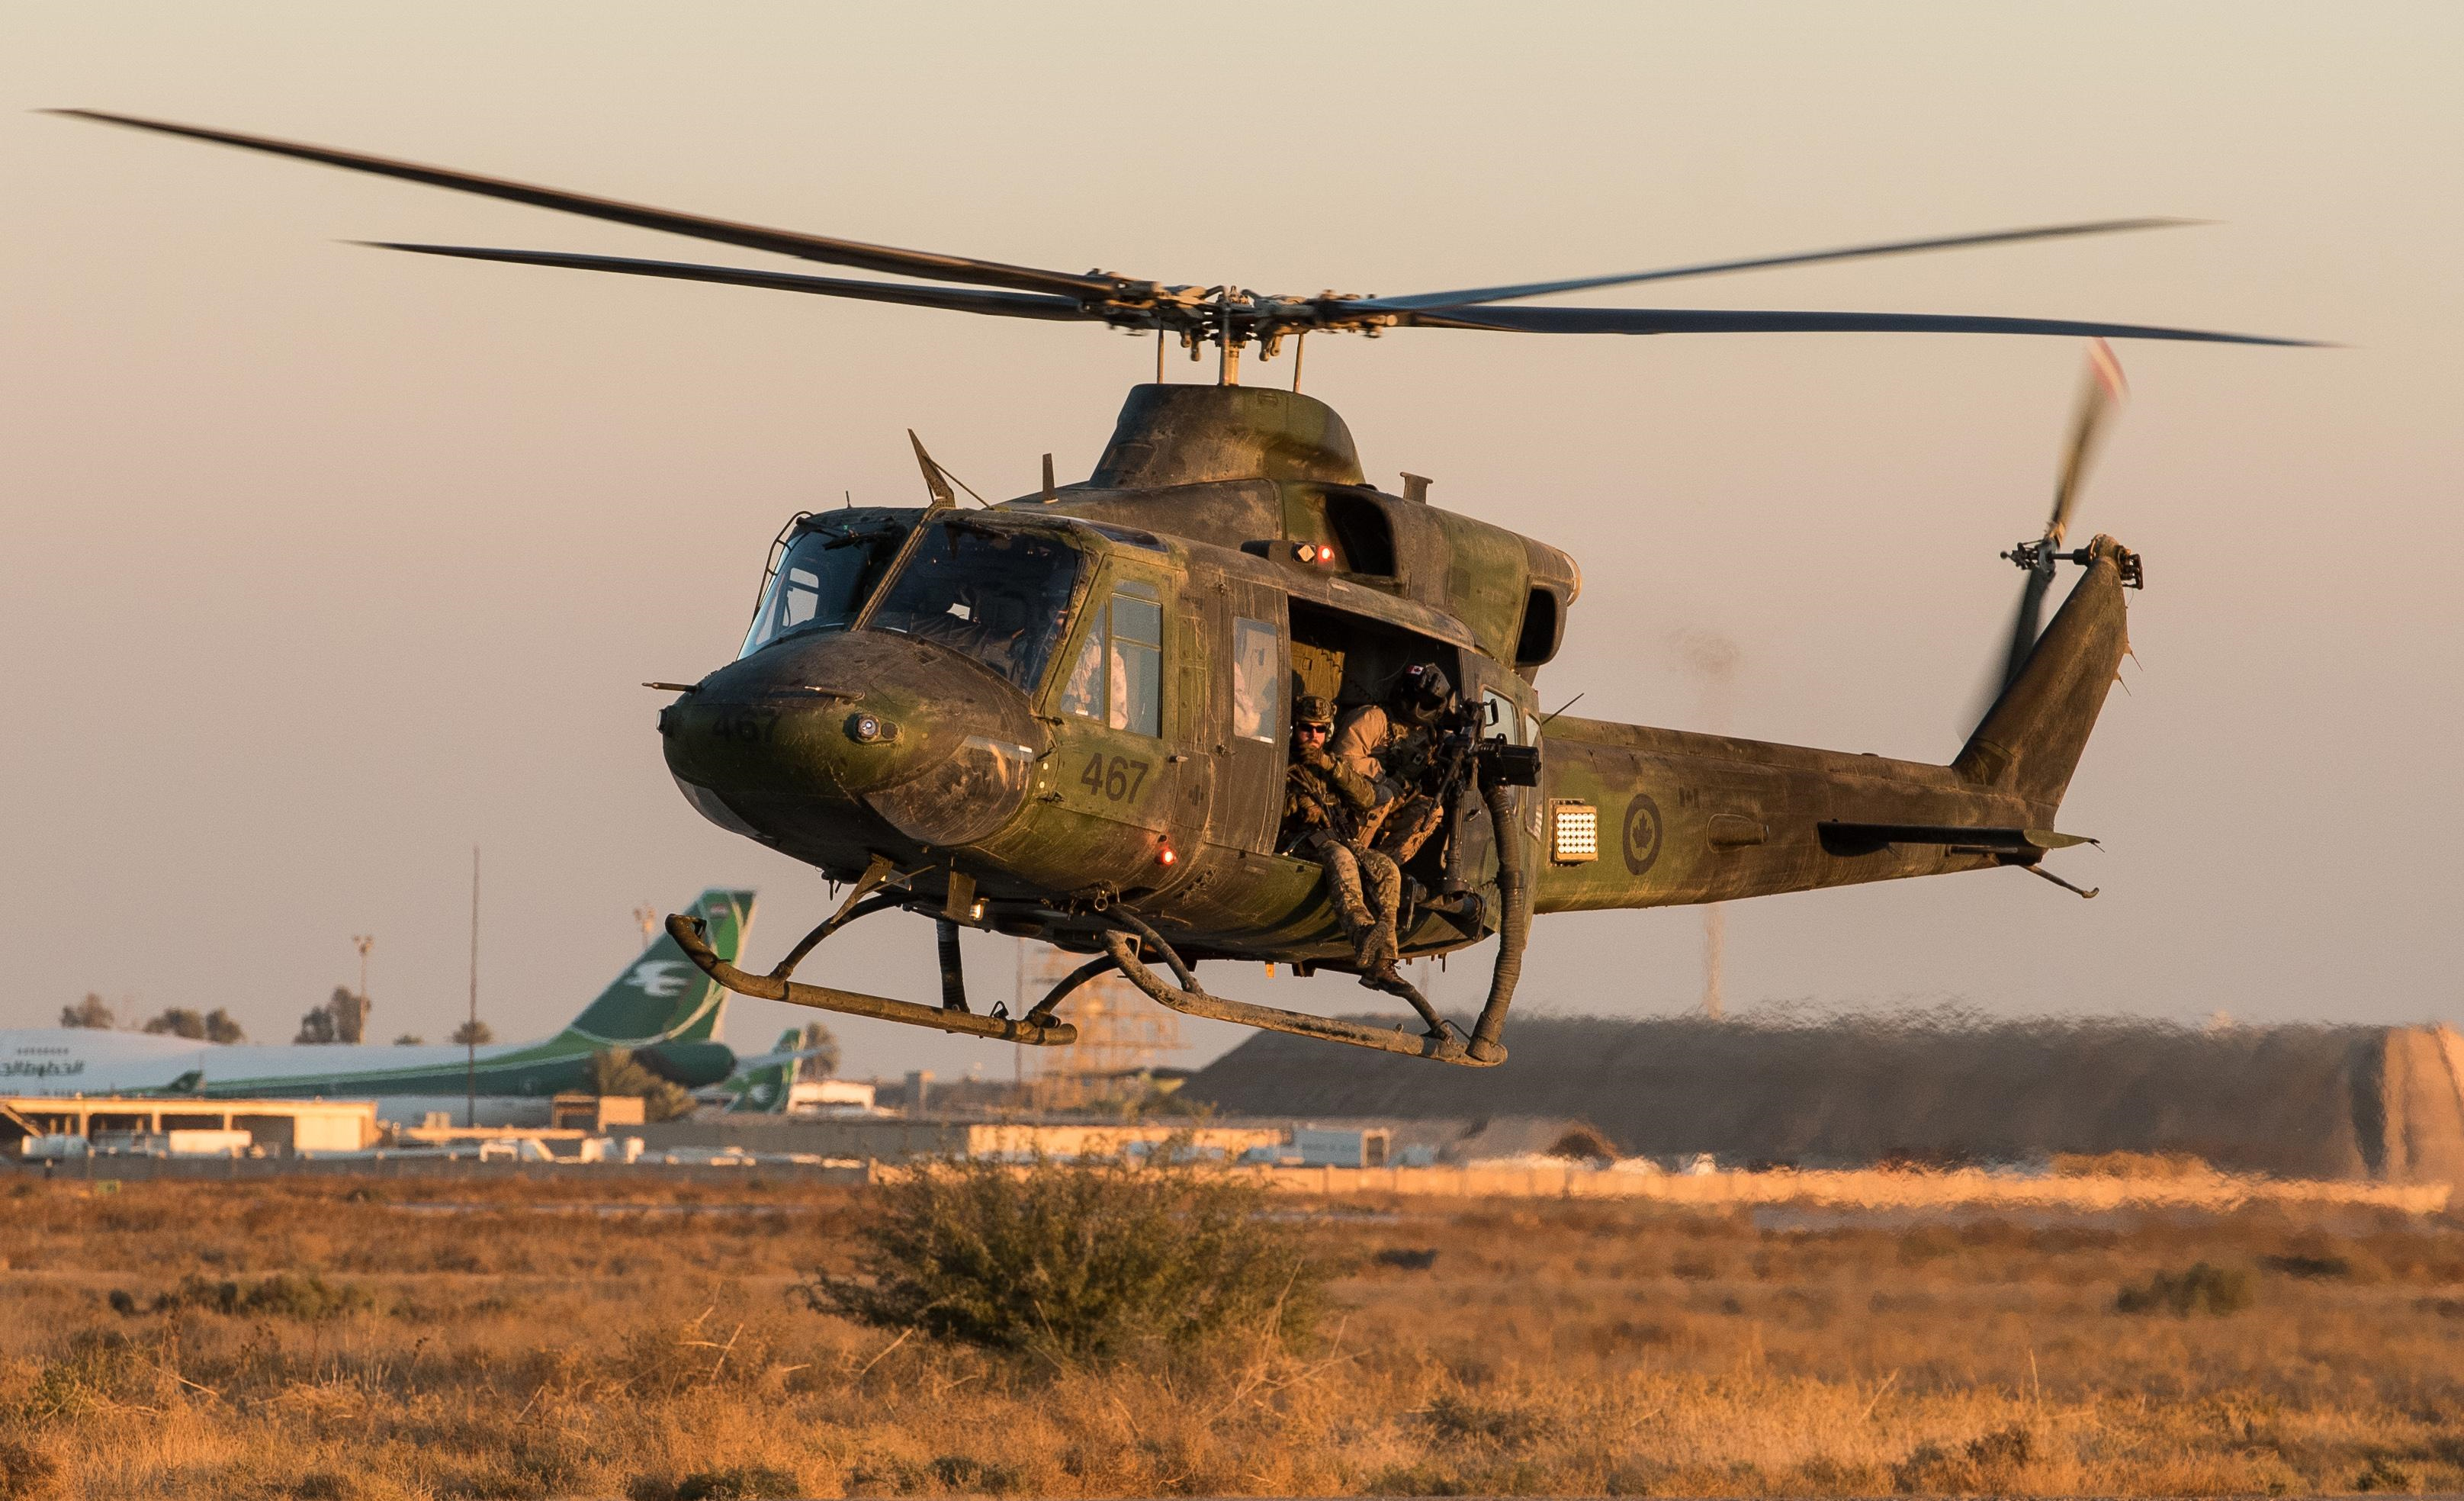 A green and black military helicopter lifts off from the tarmac. Armed soldiers wearing green camouflage uniforms sit in the open side door.